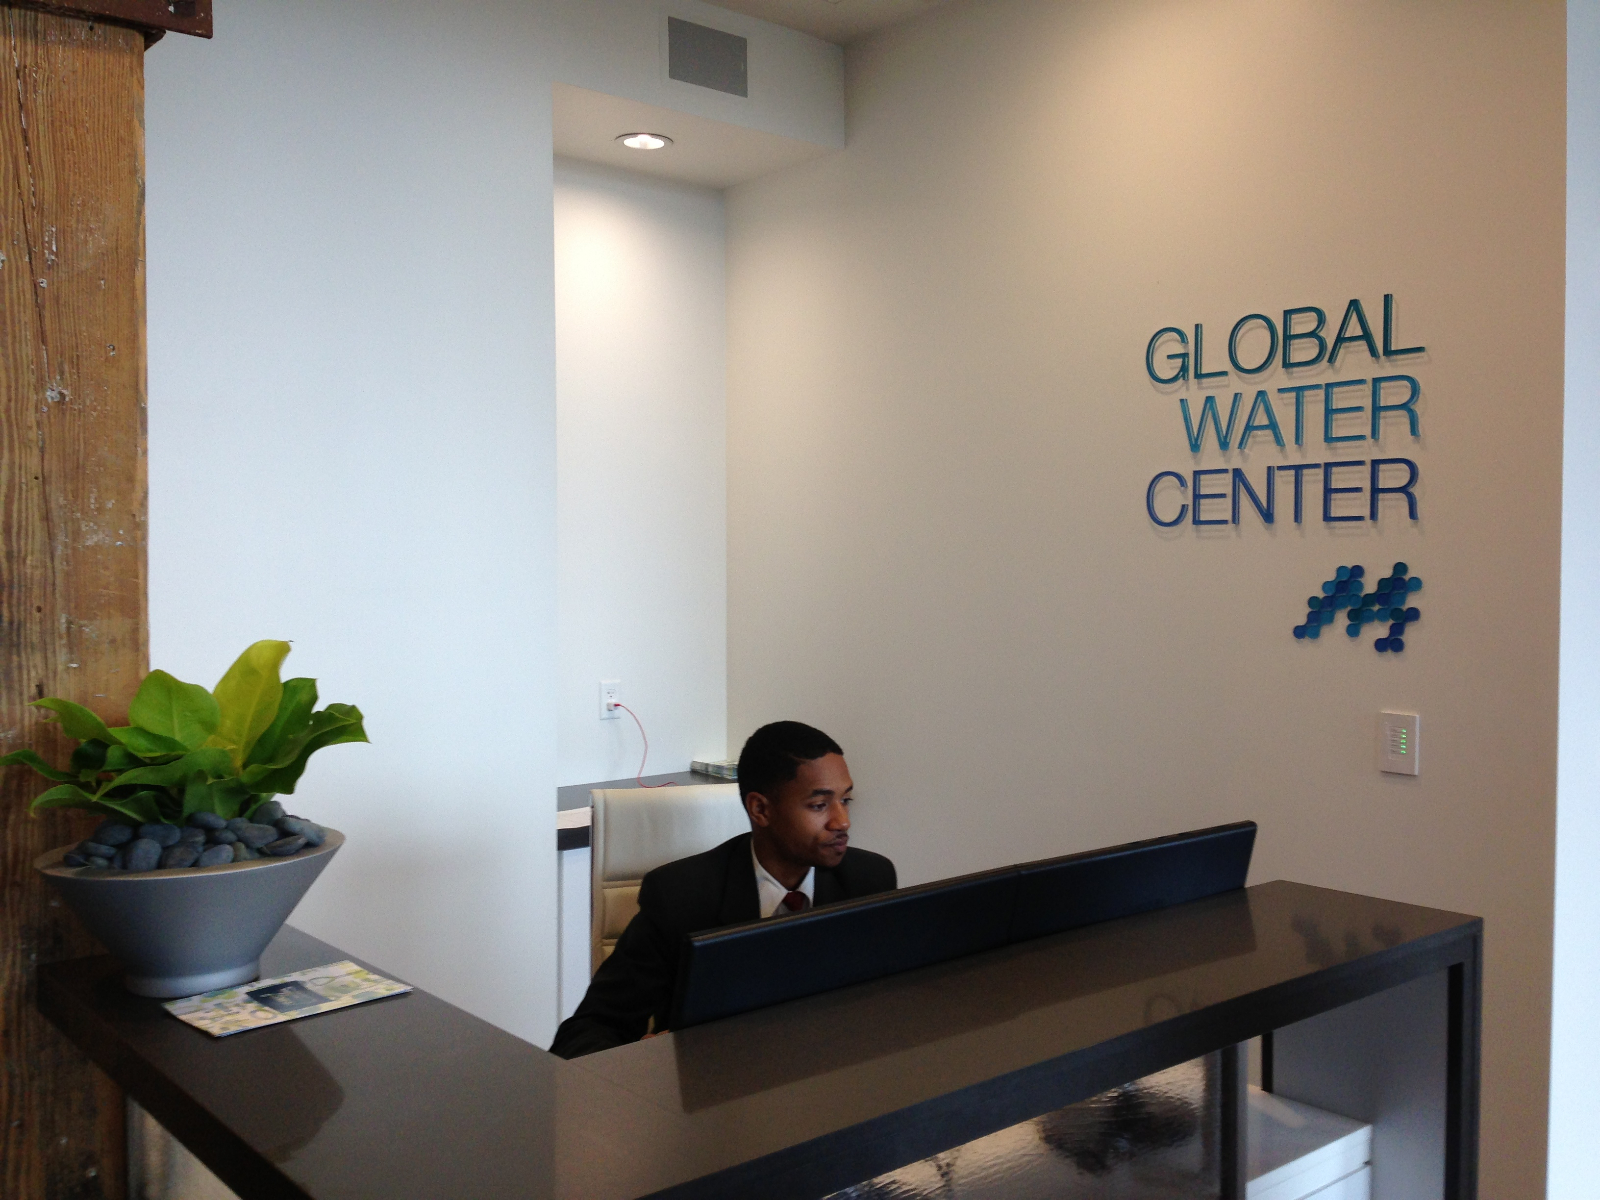 Welcome to the Global Water Center.